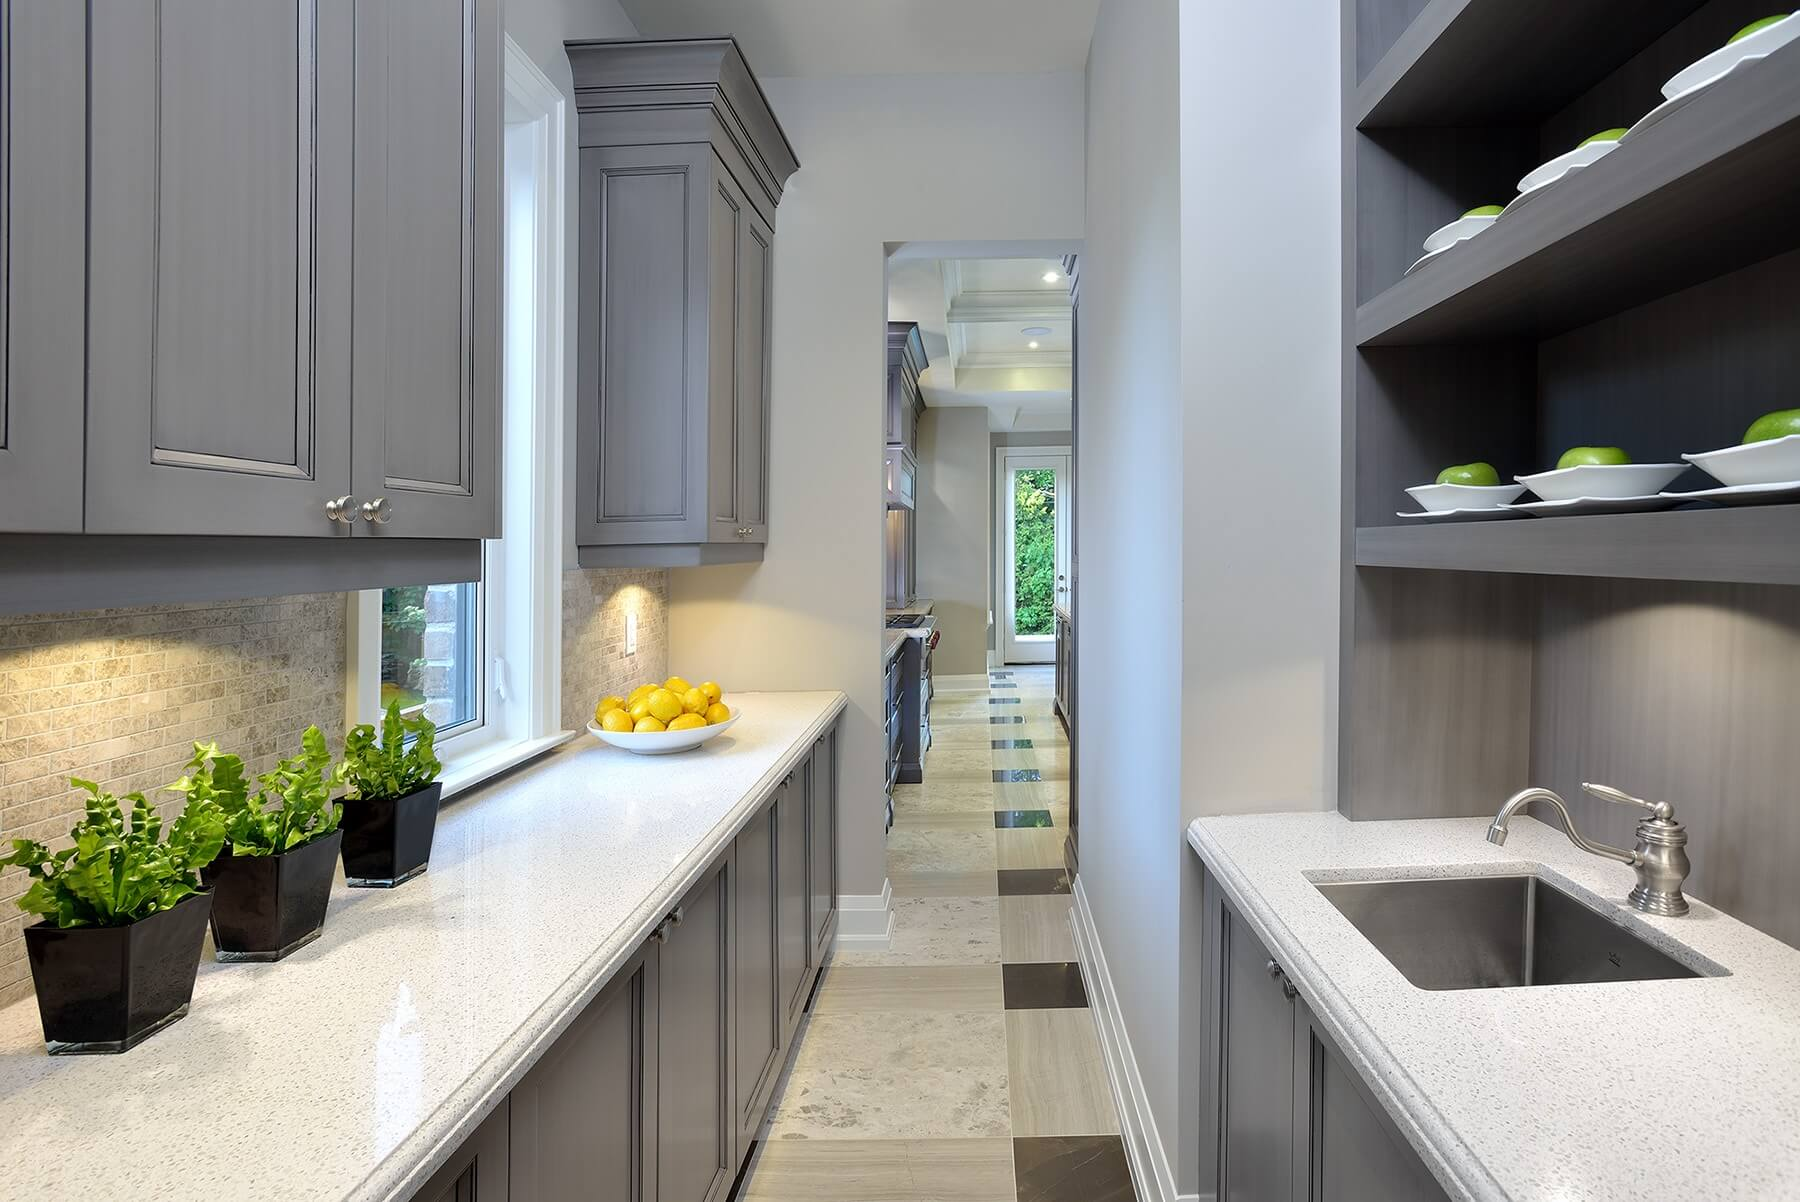 This hallway extending from the kitchen to the dining area functions as a pantry, with secondary sink and plenty of cabinetry.